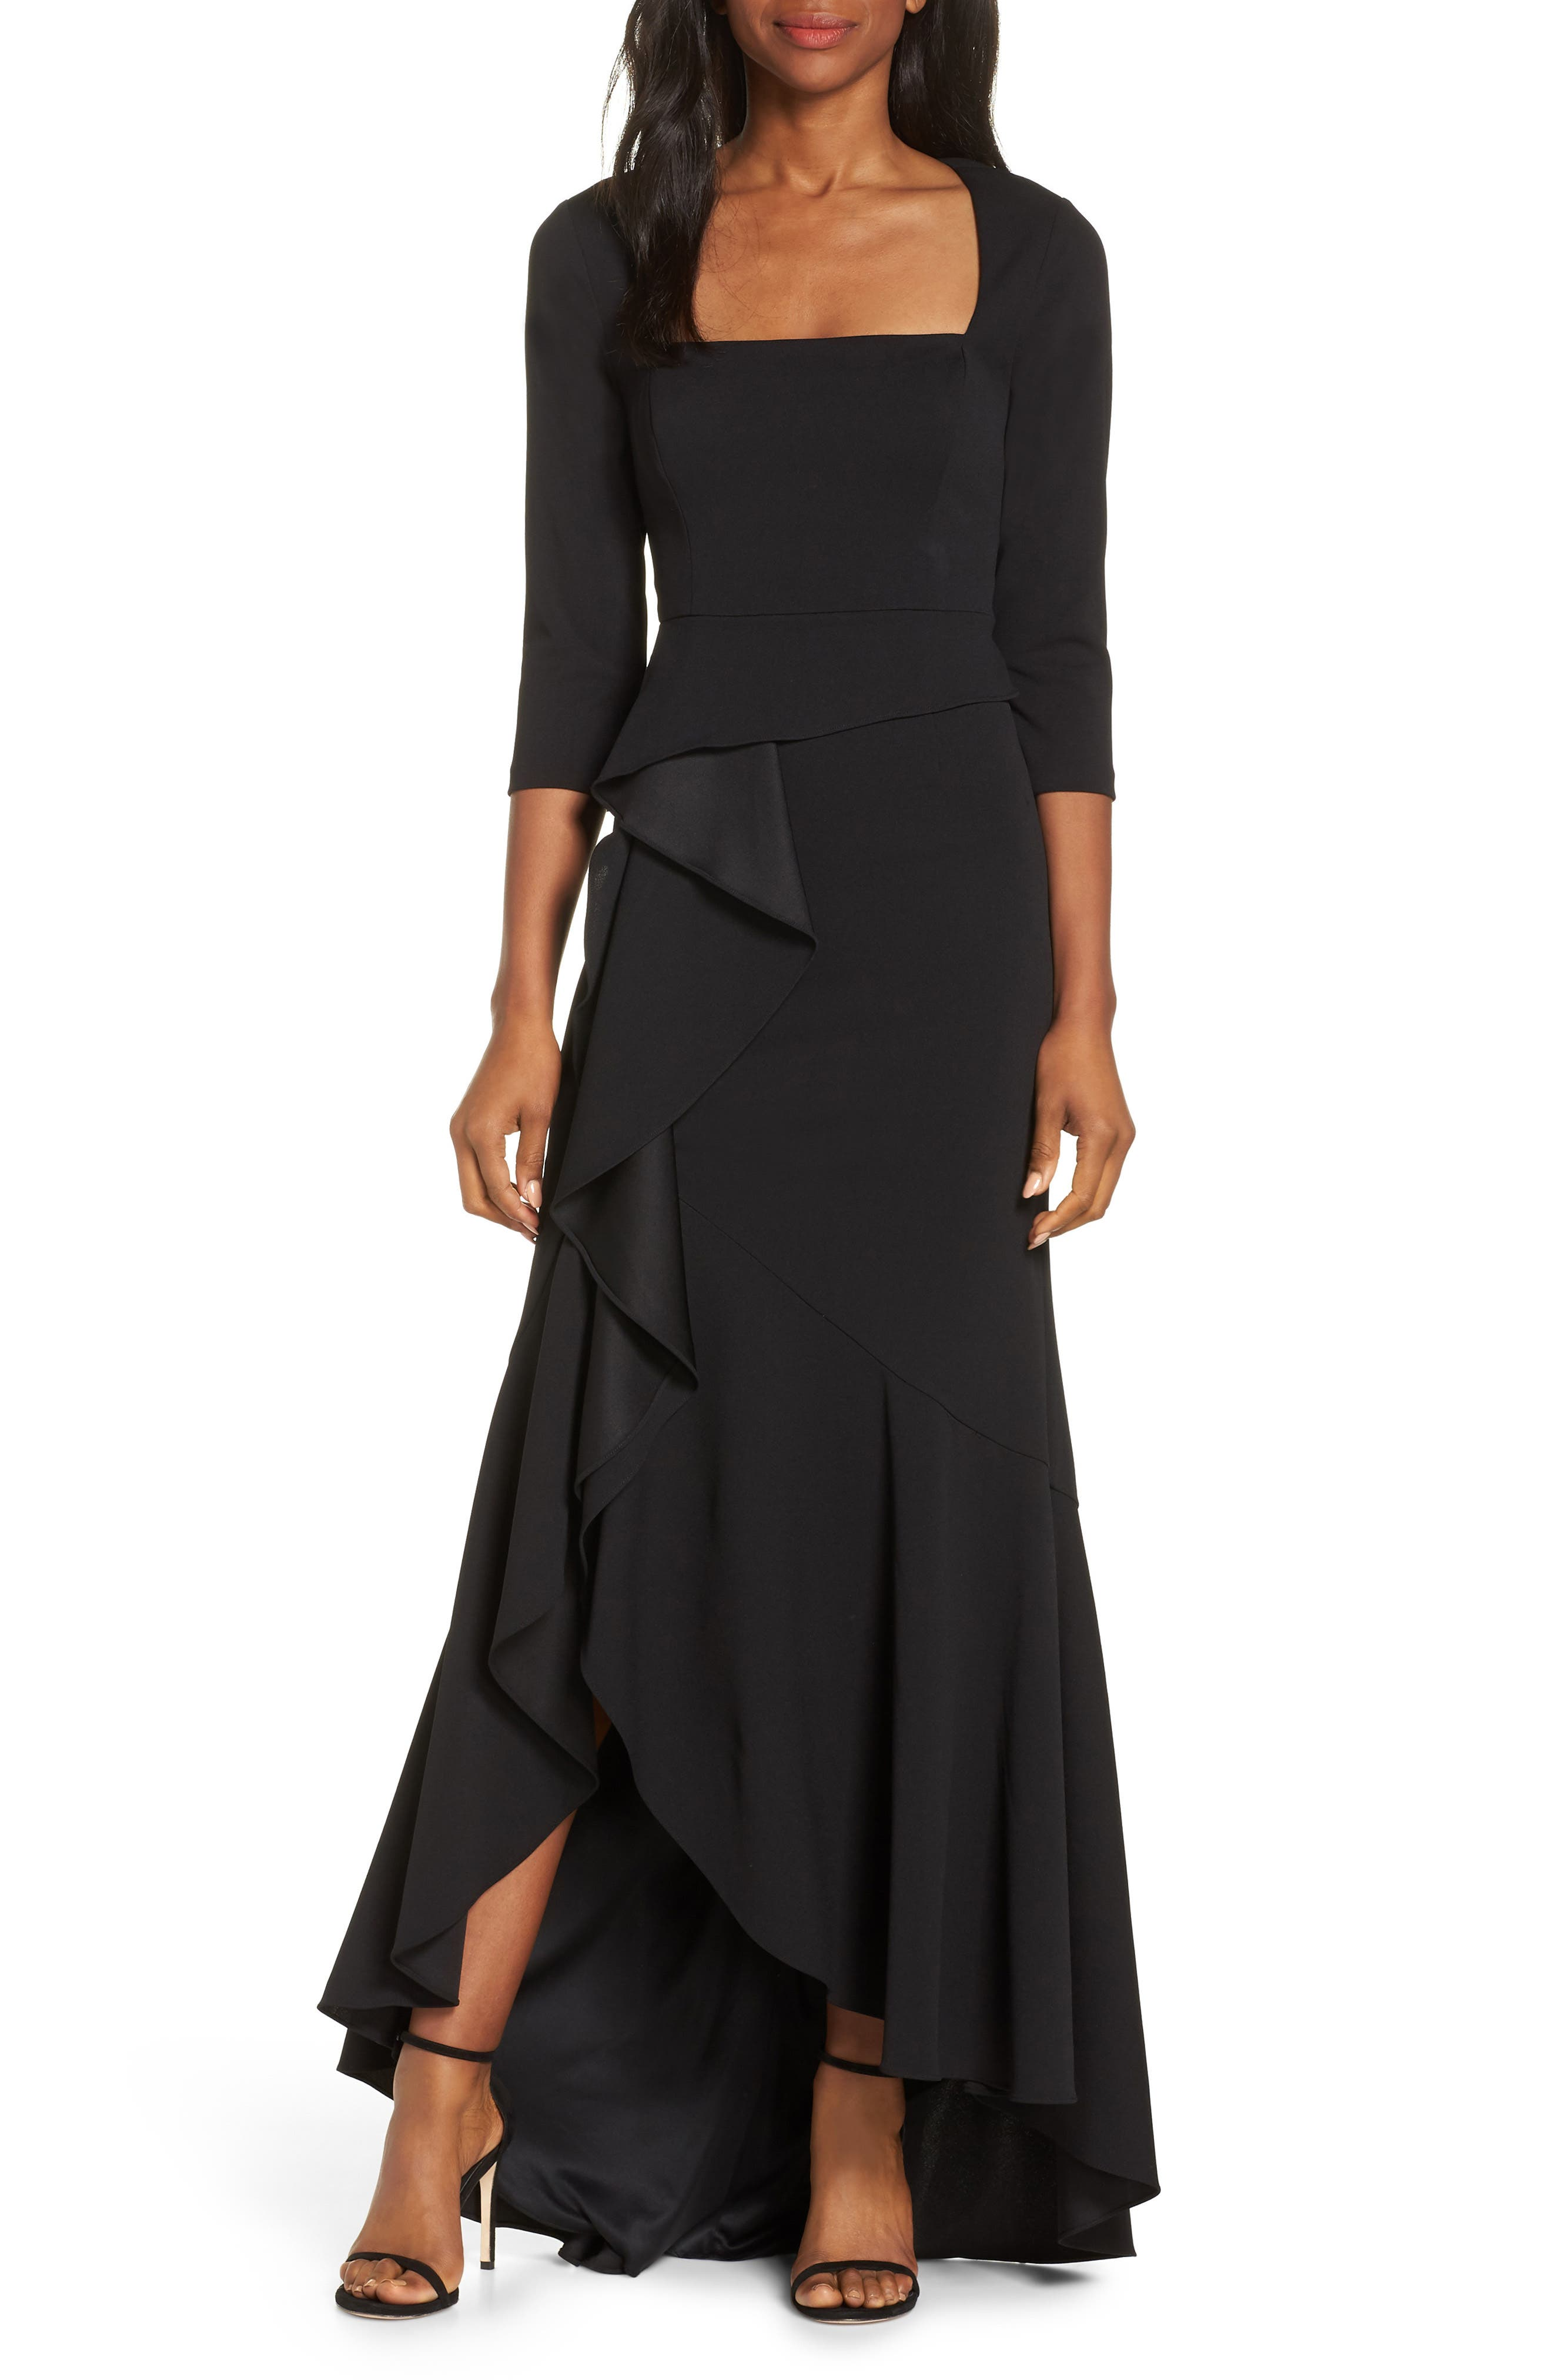 Nordstrom Cocktail Dresses Adrienne Arpel